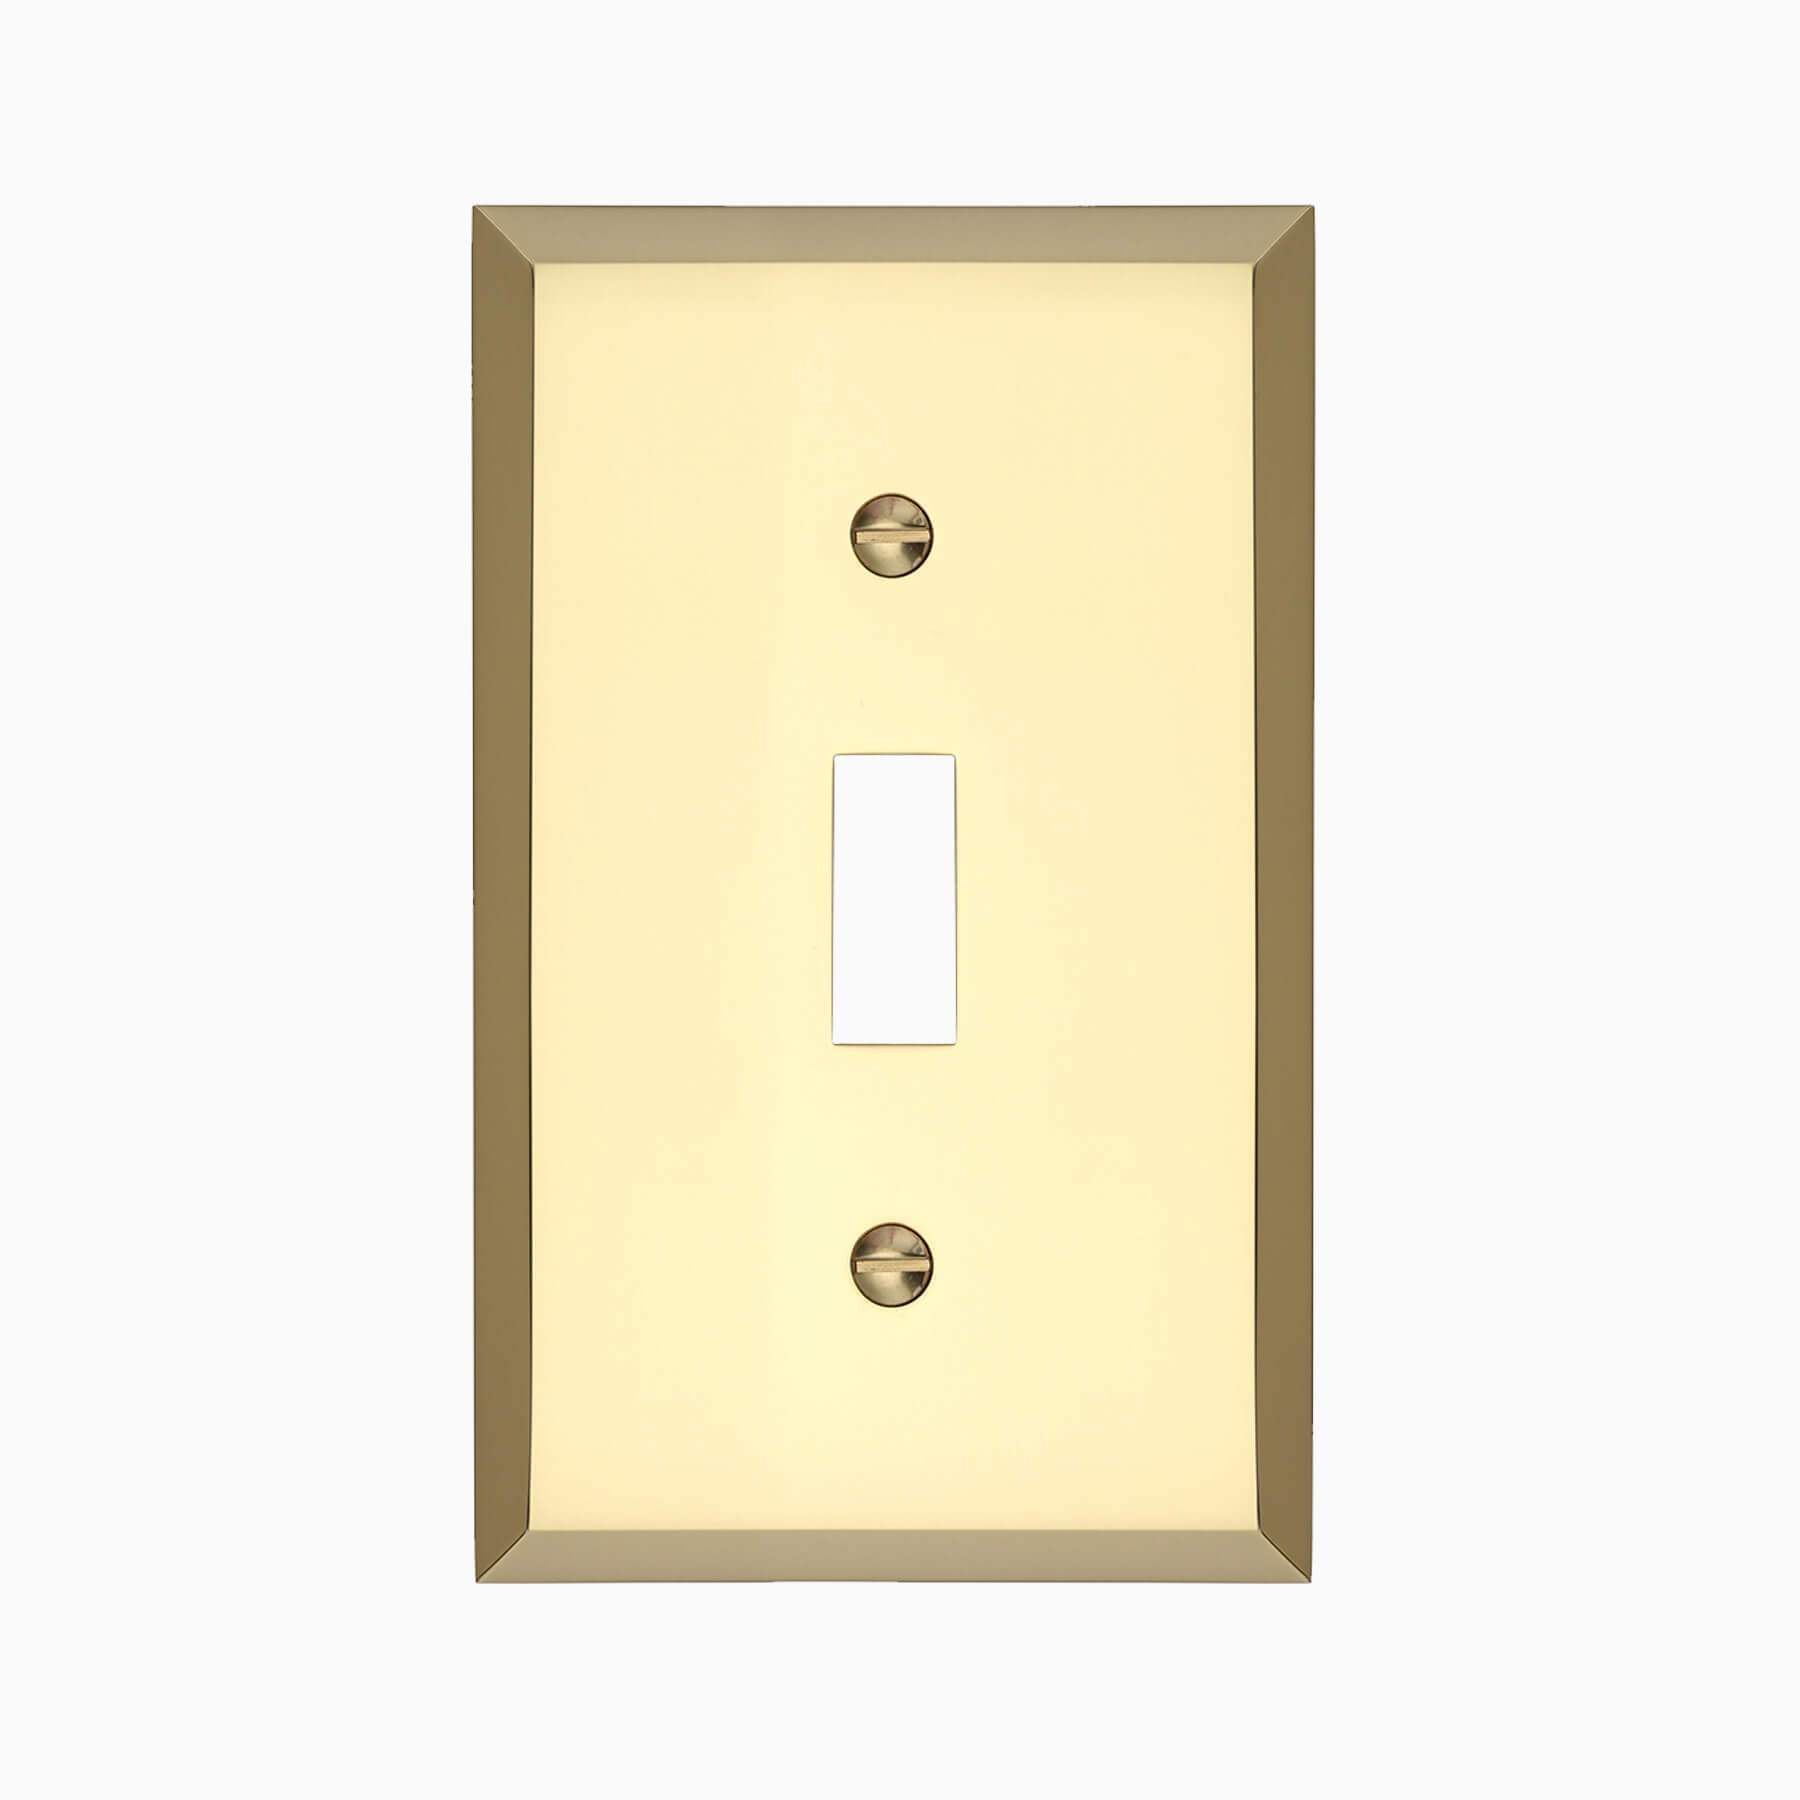 Single Light Switch Covers Gorgeous Light Switches Toggle Outlet ...